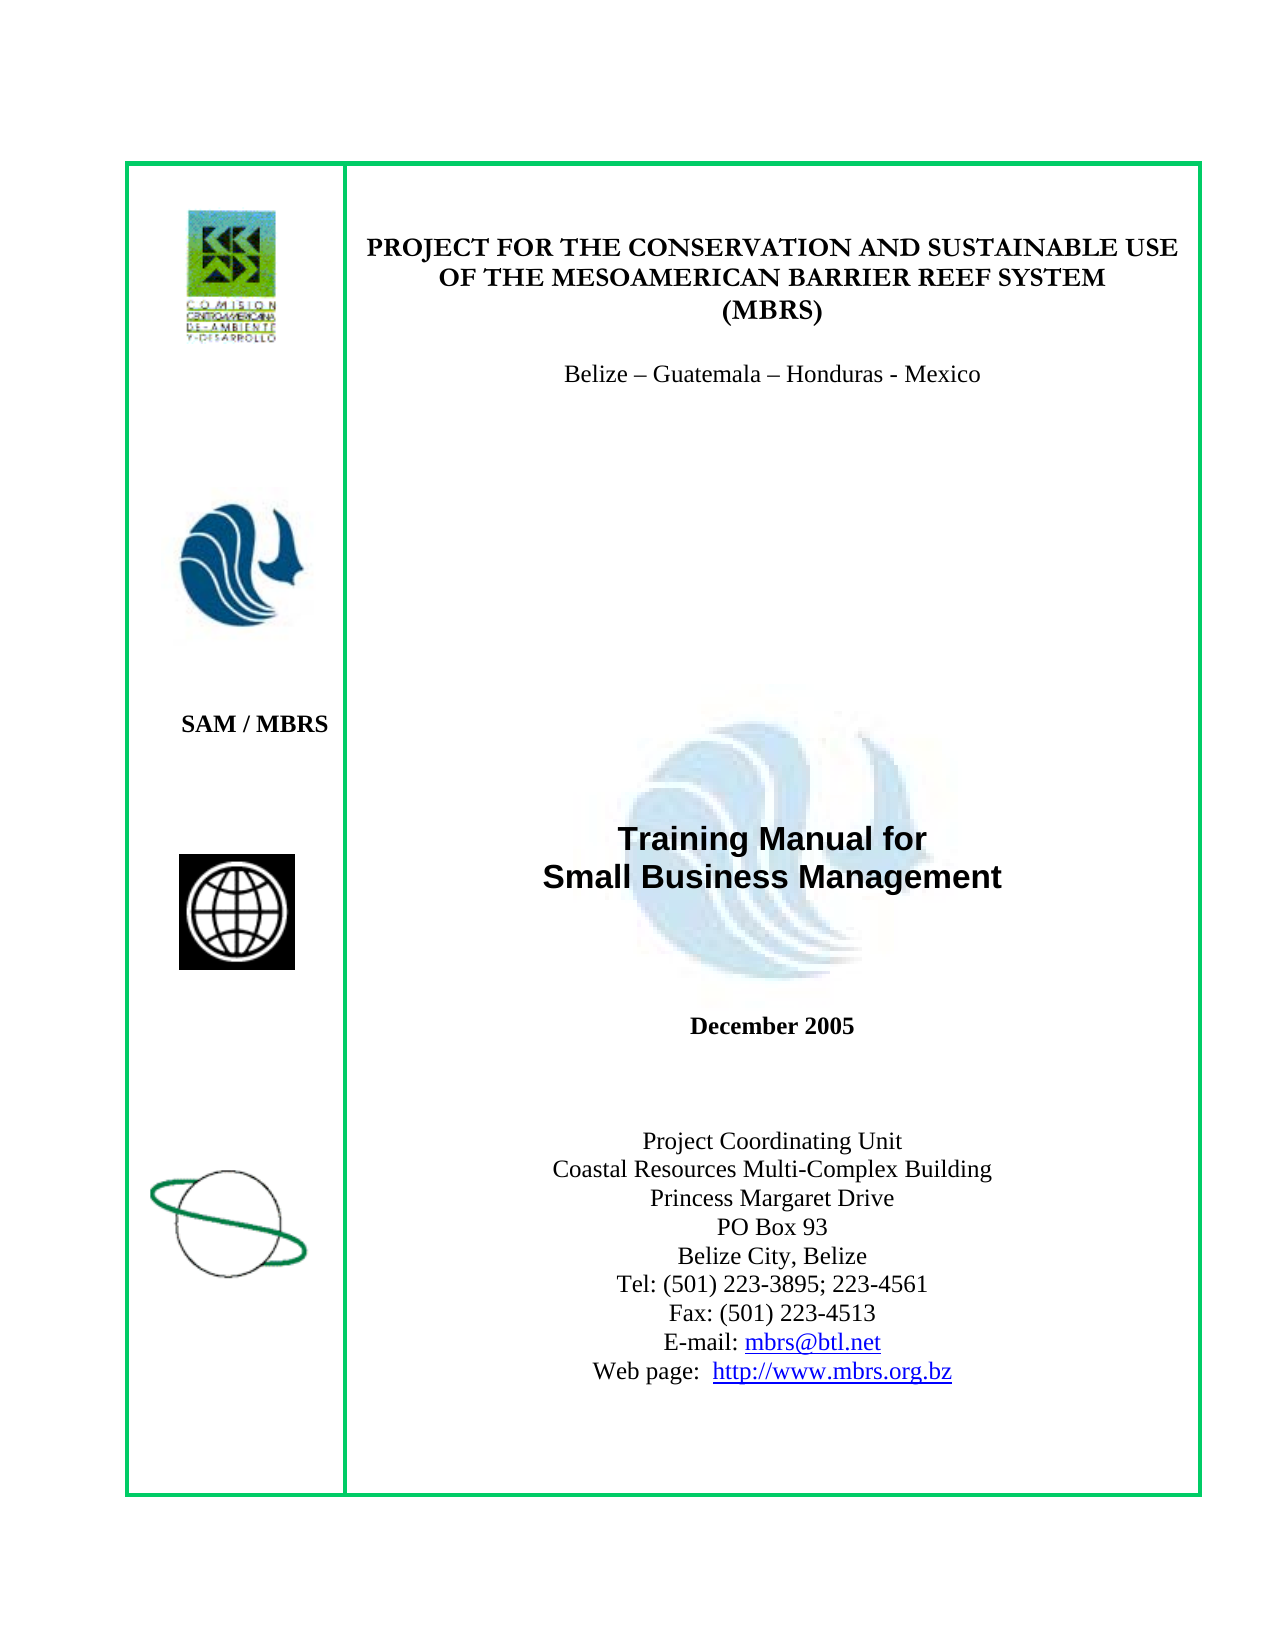 Training Manual For Small Business Management